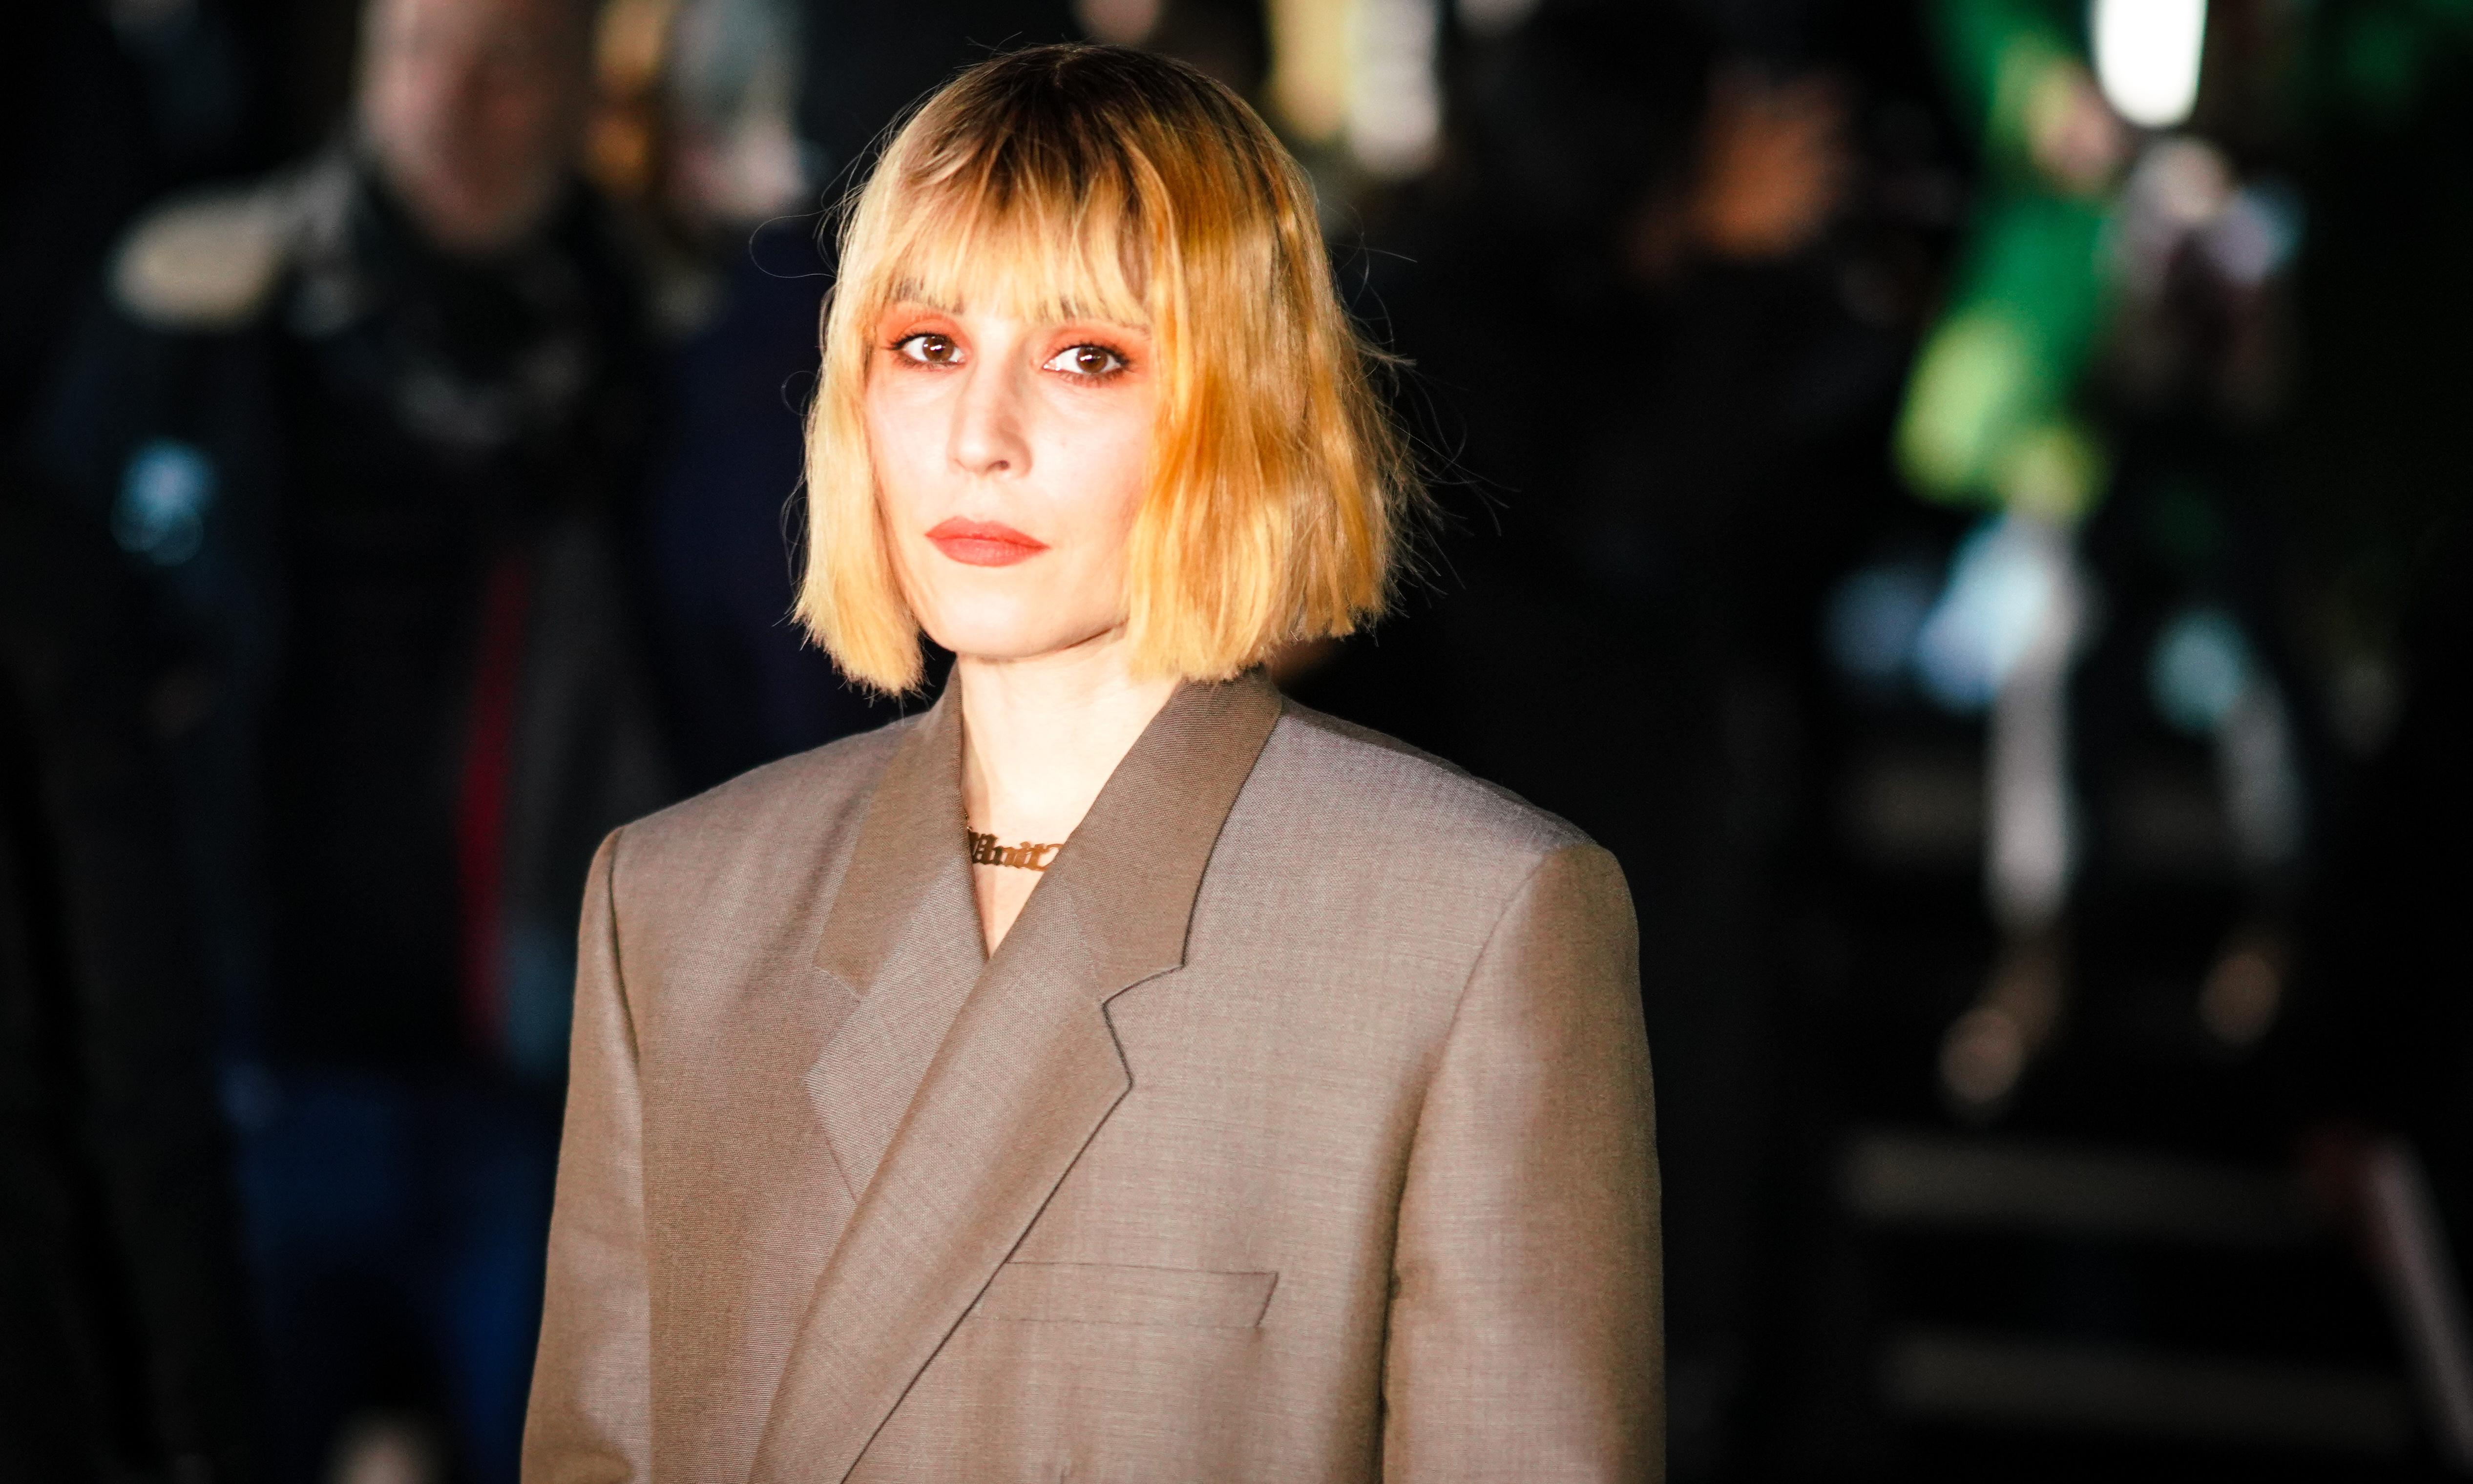 'I'll never be a cute object'... Dragon Tattoo star Noomi Rapace on bank heists, sexism and loving England